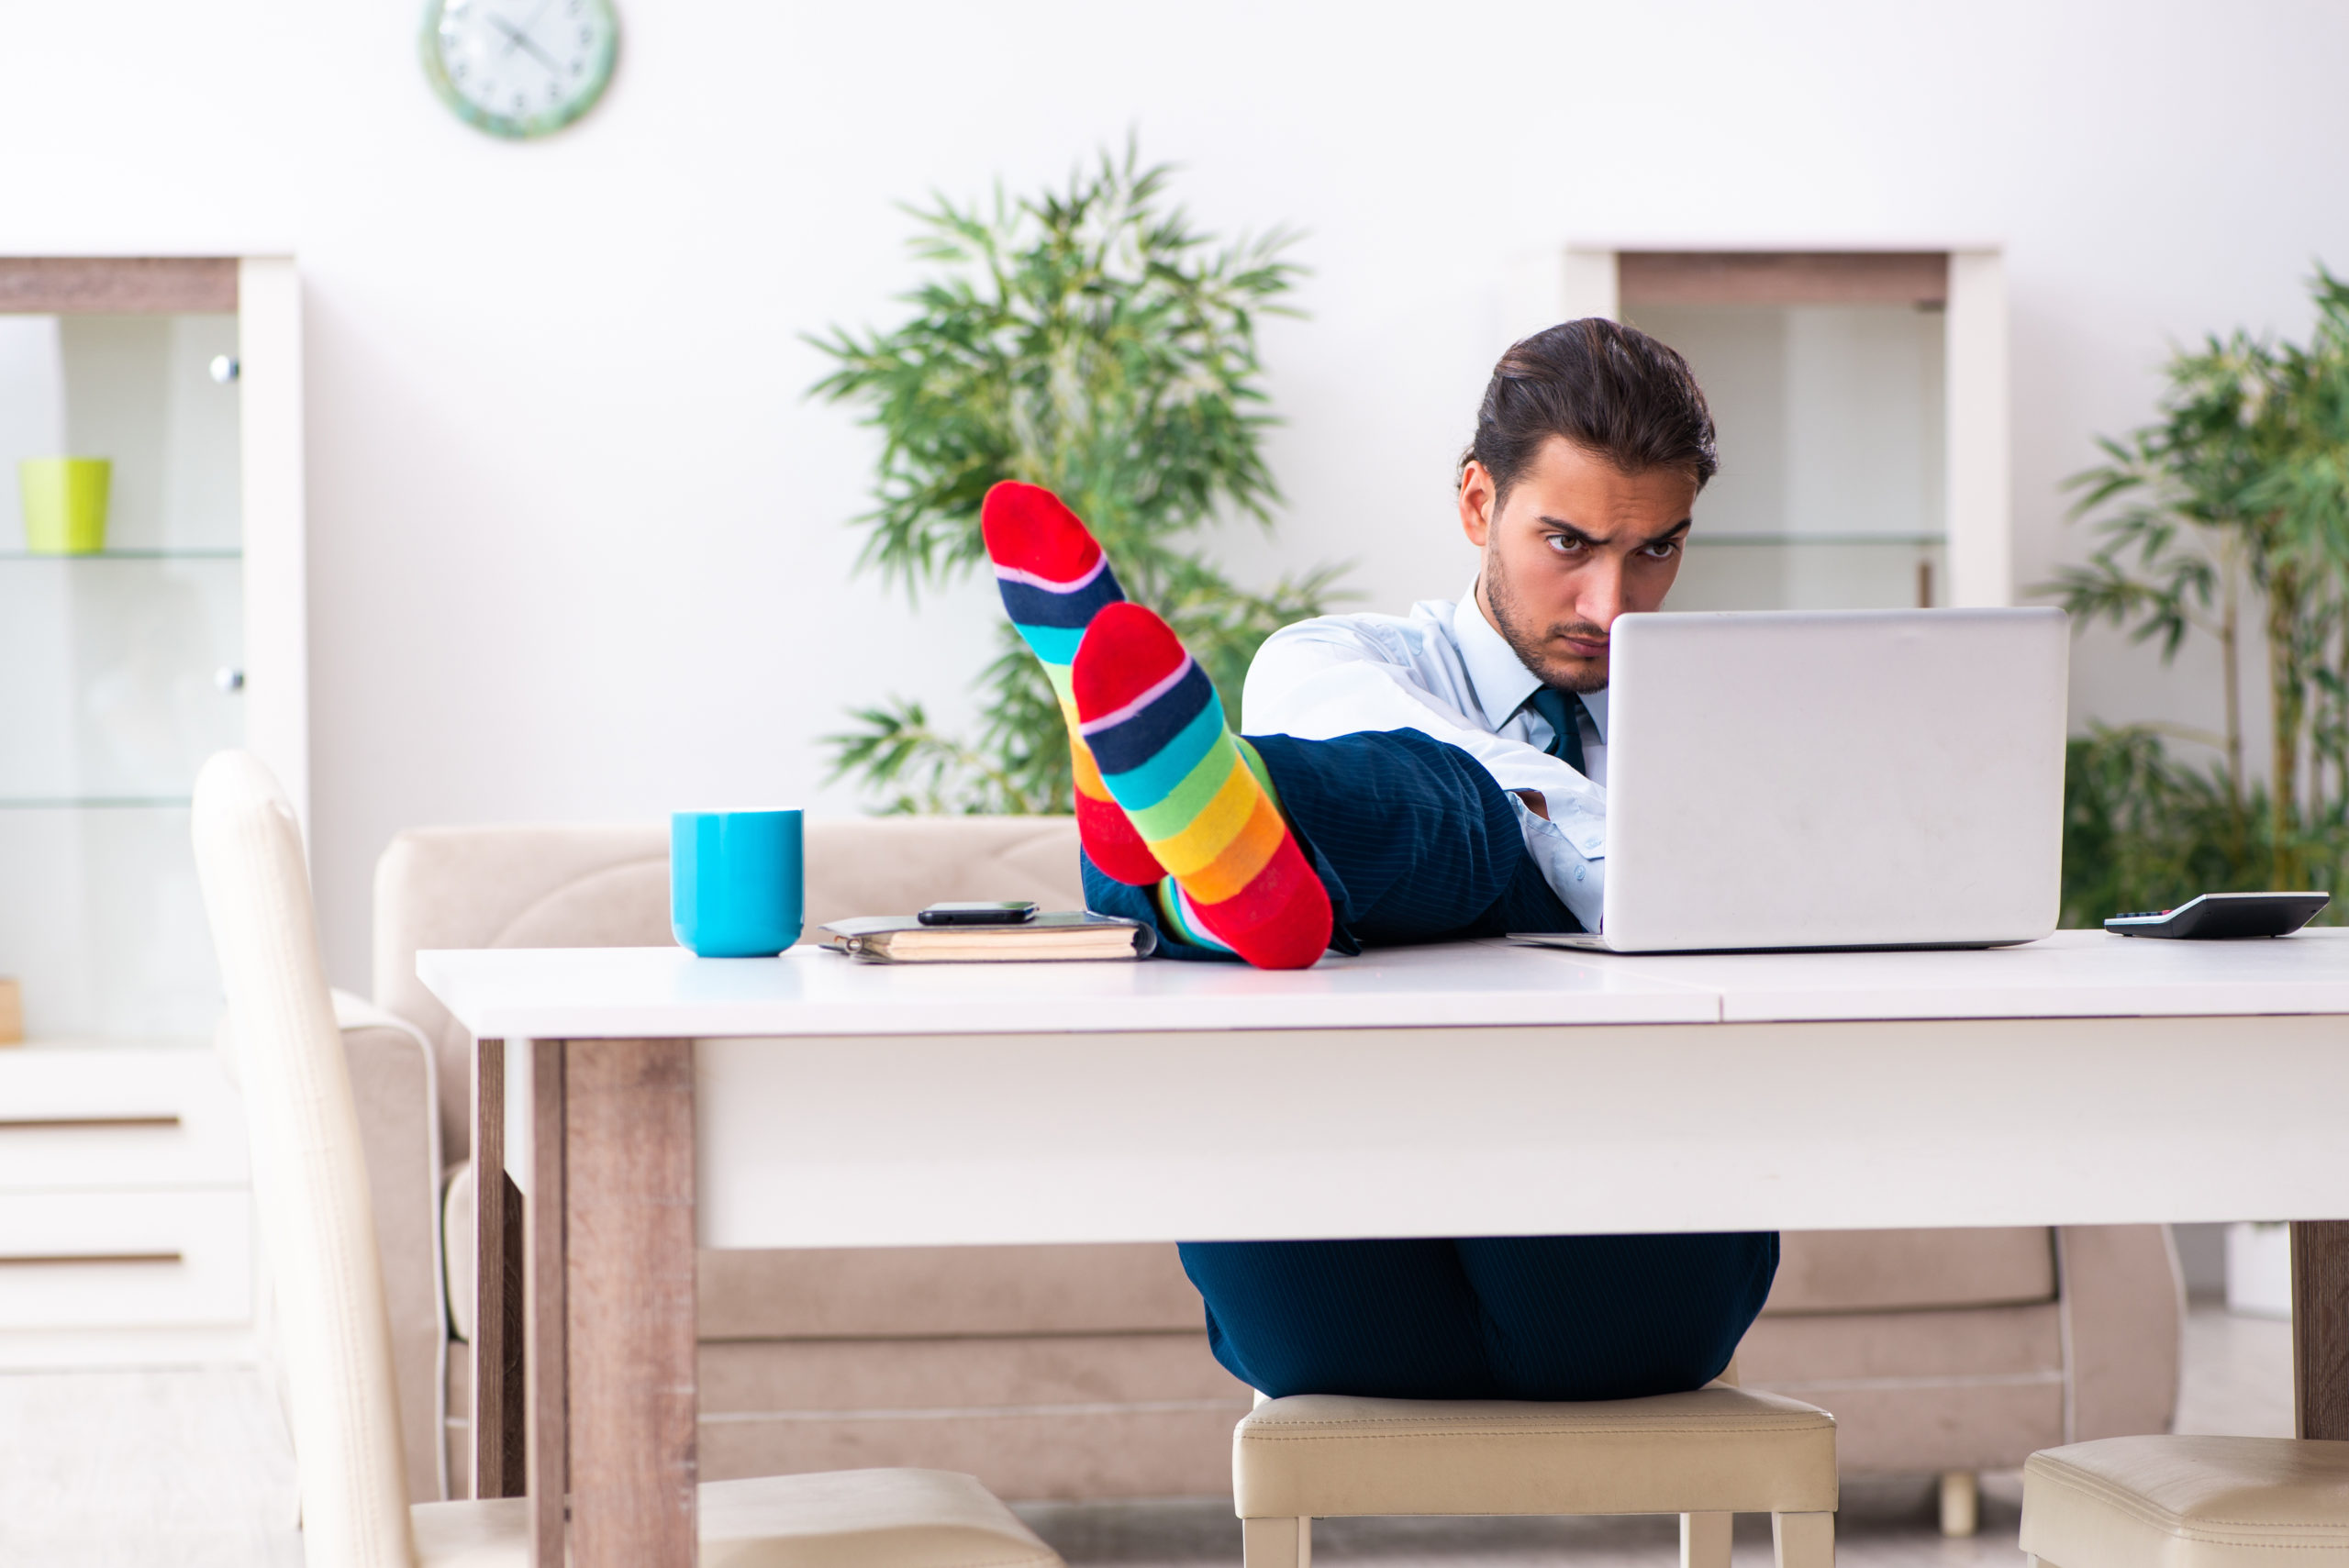 The young male businessman working at home